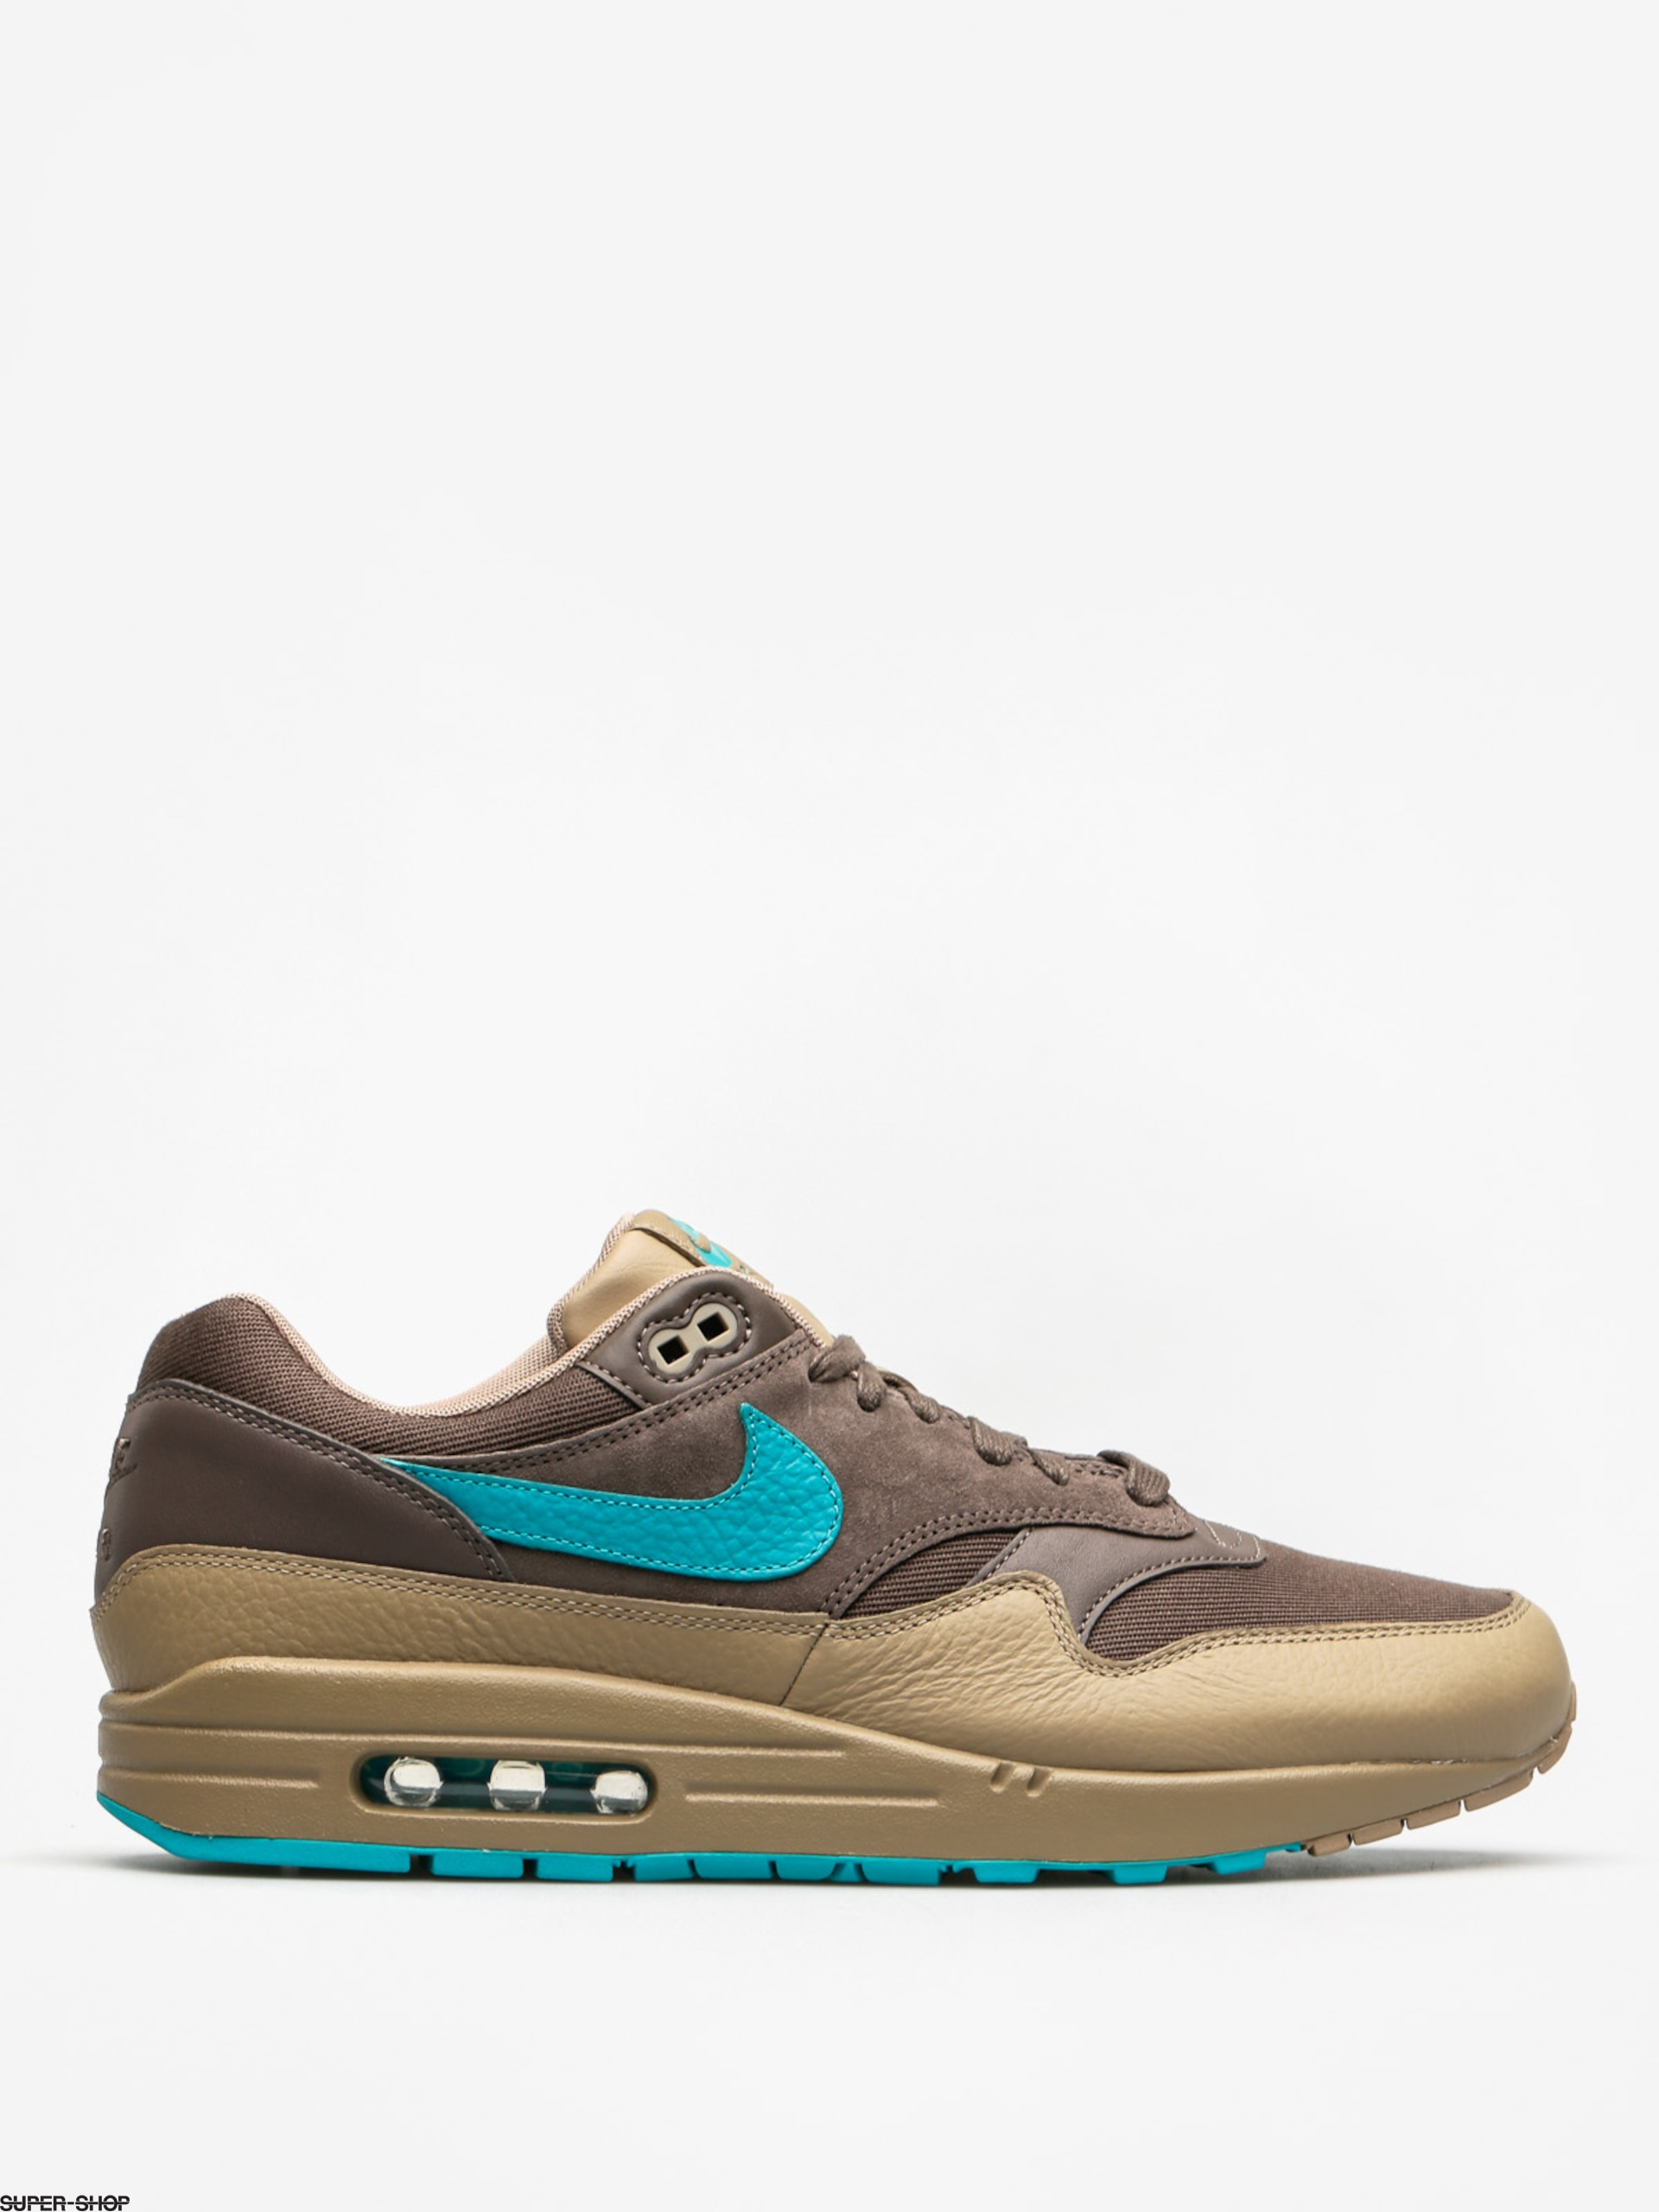 Nike Schuhe Air Max 1 (Premium ridgerock/turbo green khaki)